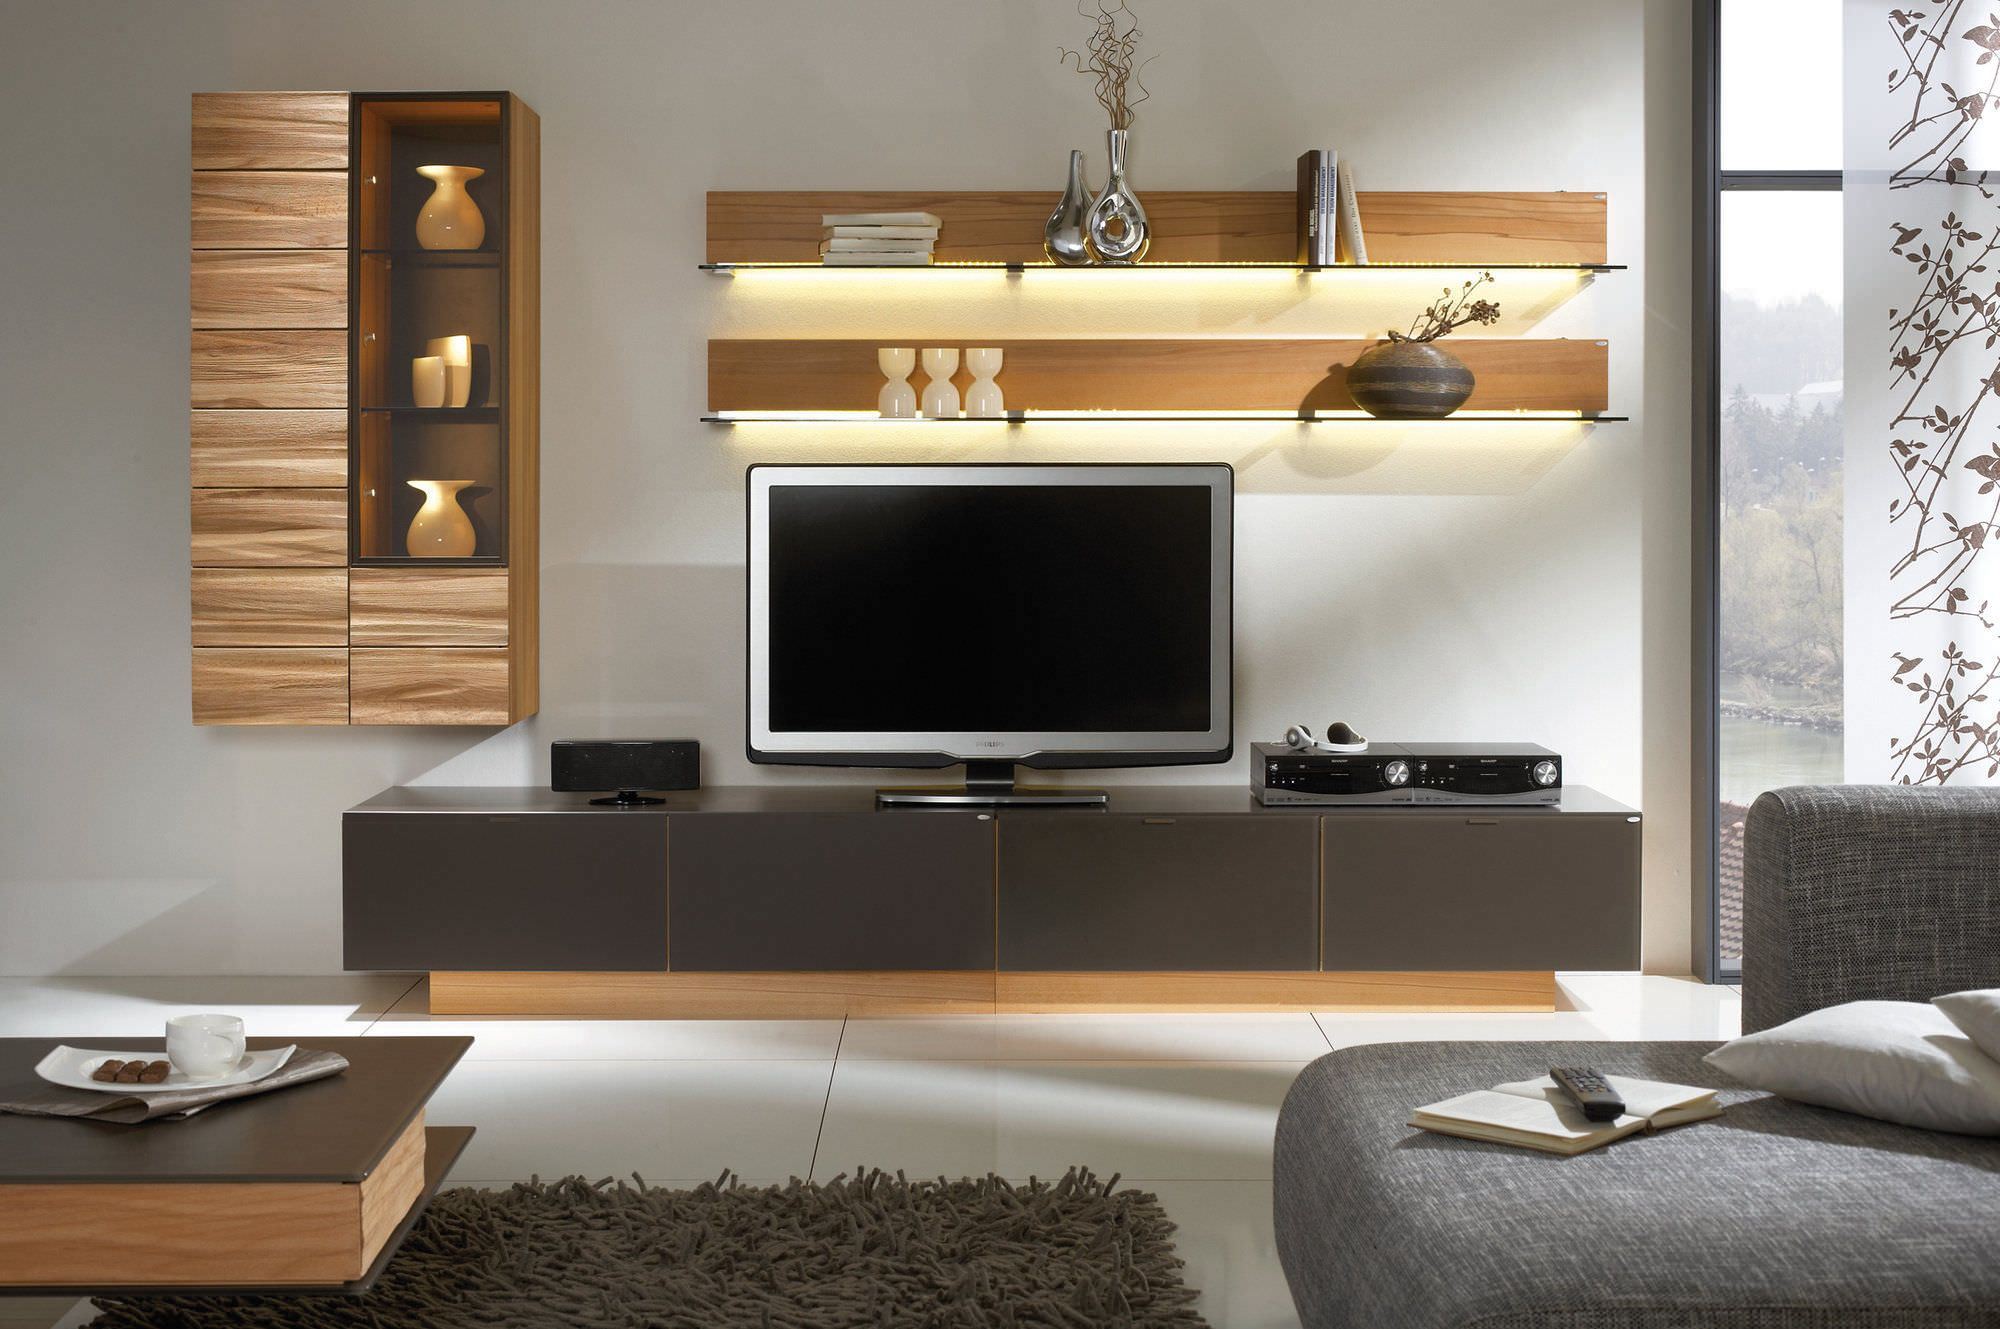 Design Wall Units For Living Room view in gallery lovely use of grey in the living room to complement the trendy wall Awesome White Brown Wood Glass Cool Design Contemporary Tv Wall Under Storage Wall Racks Cabinet Grey